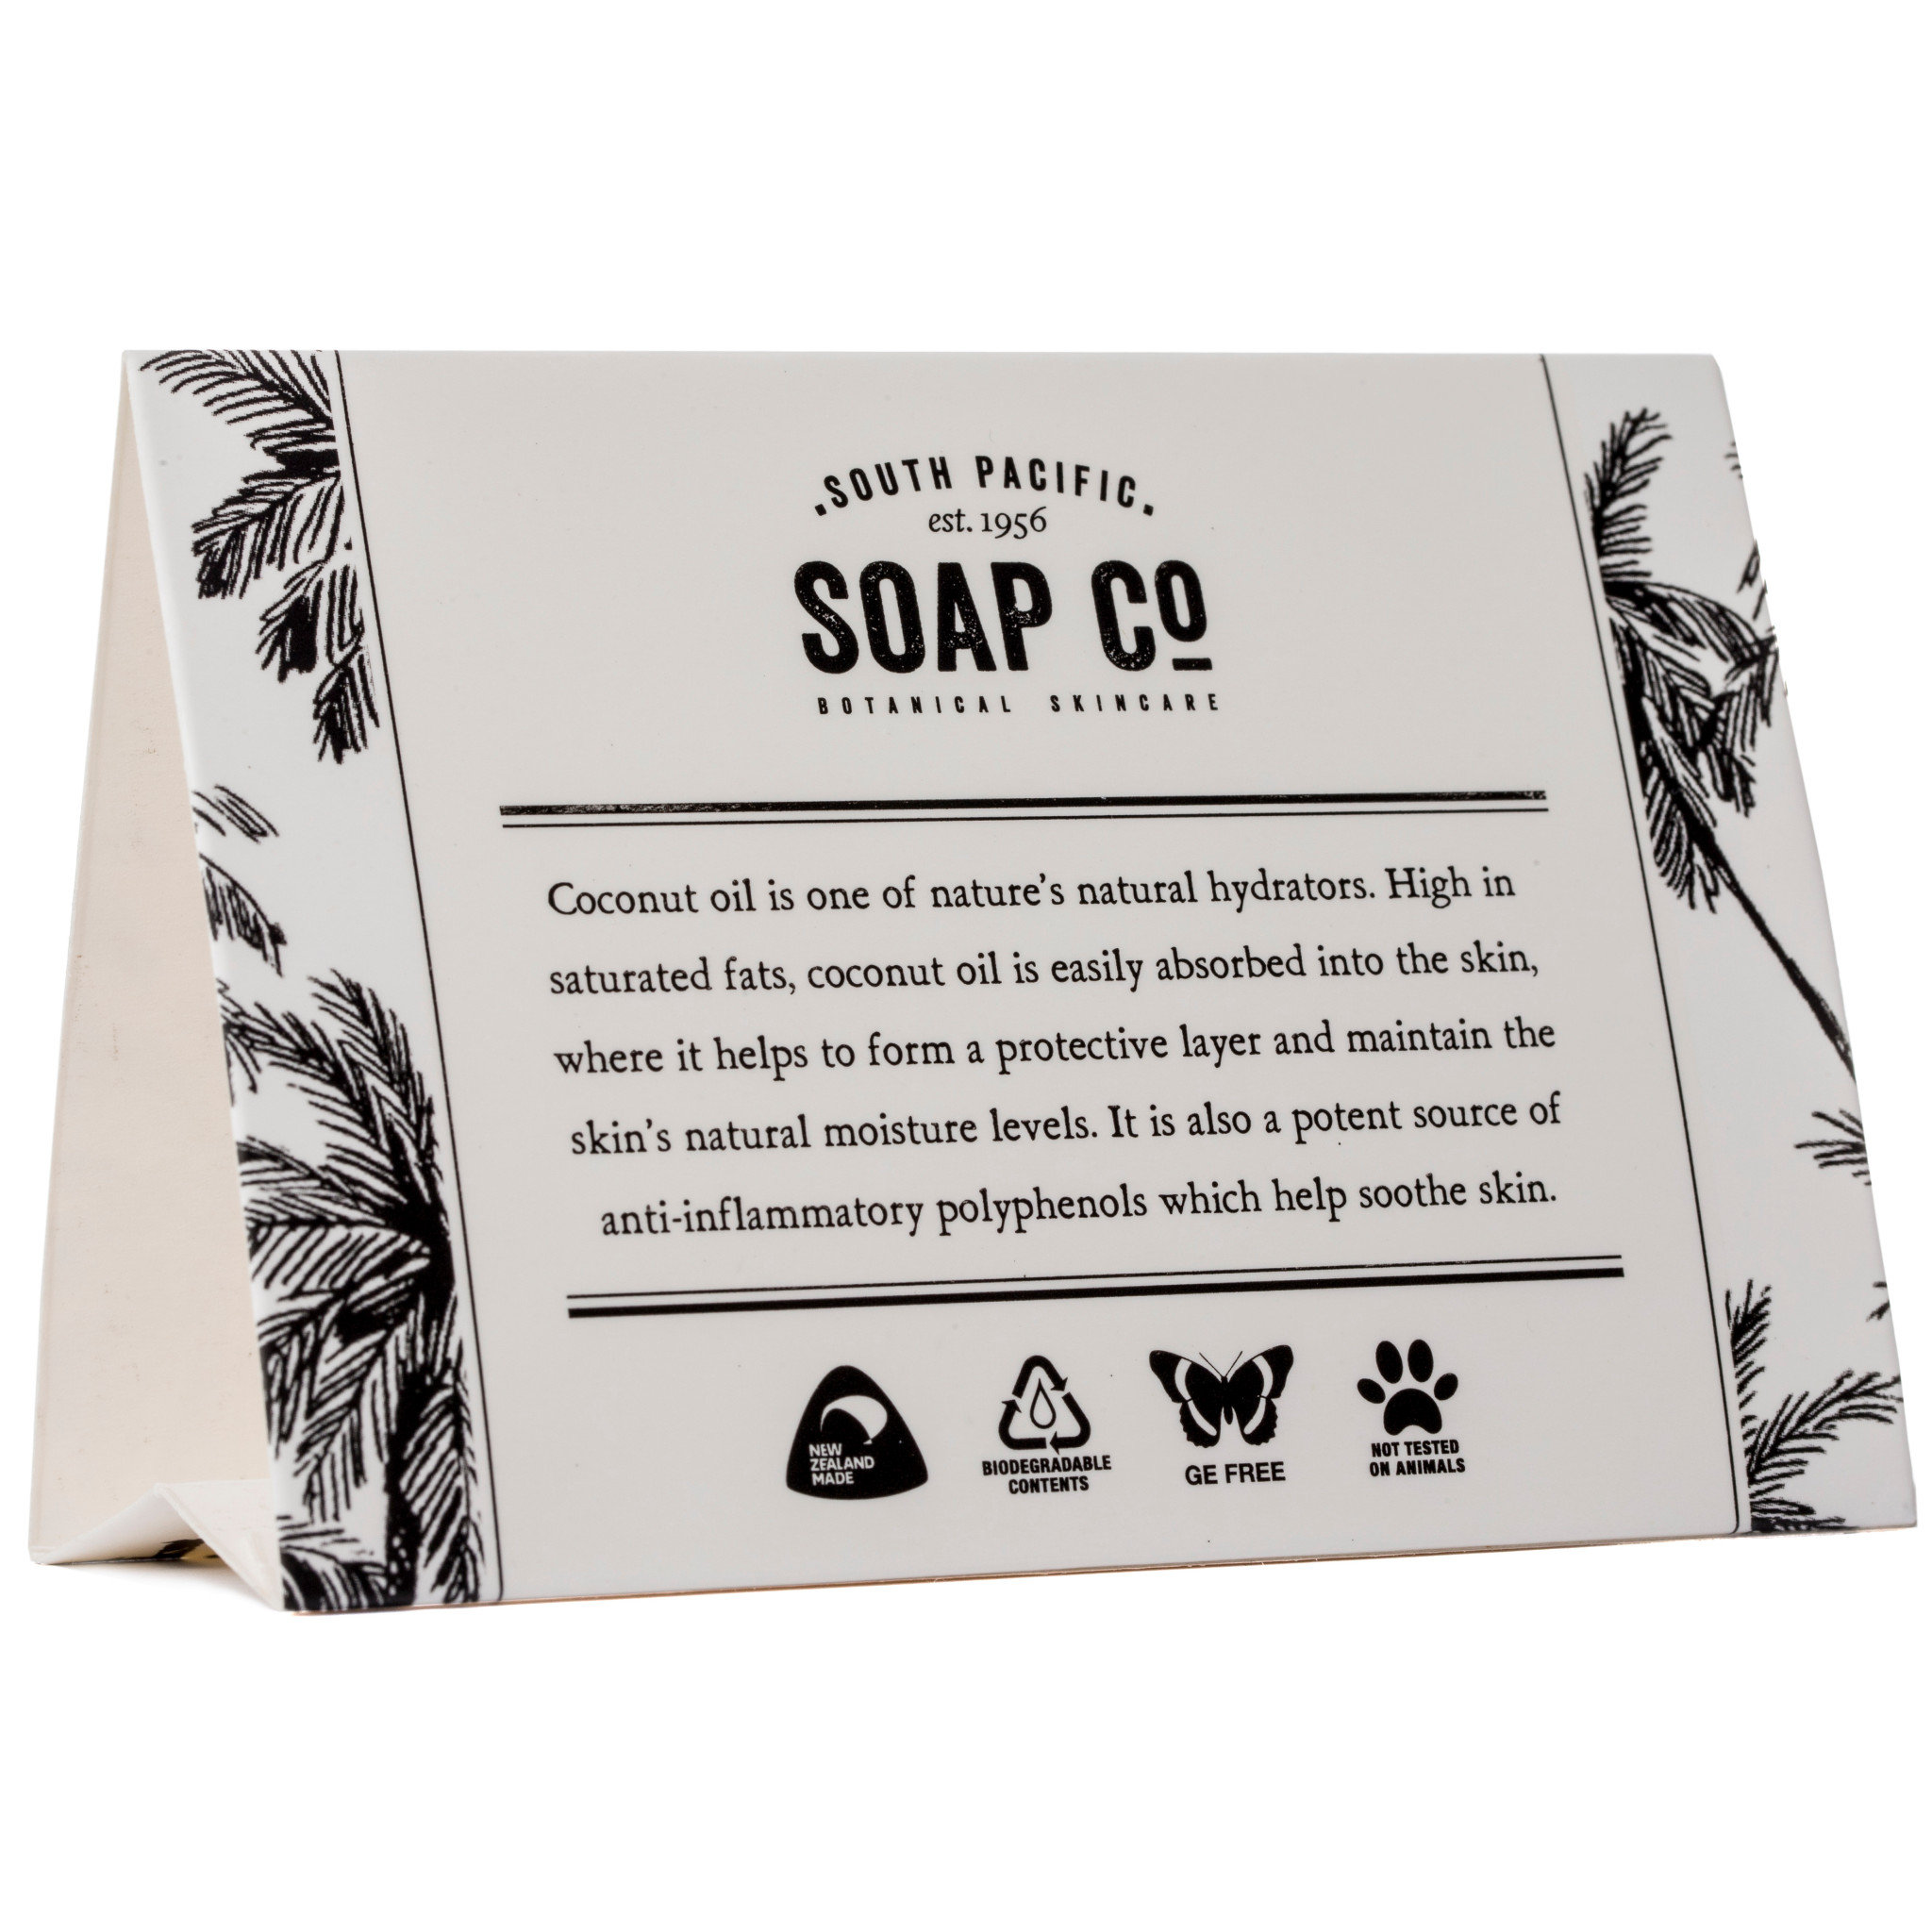 South Pacific Soap Co Environmental Tent Card